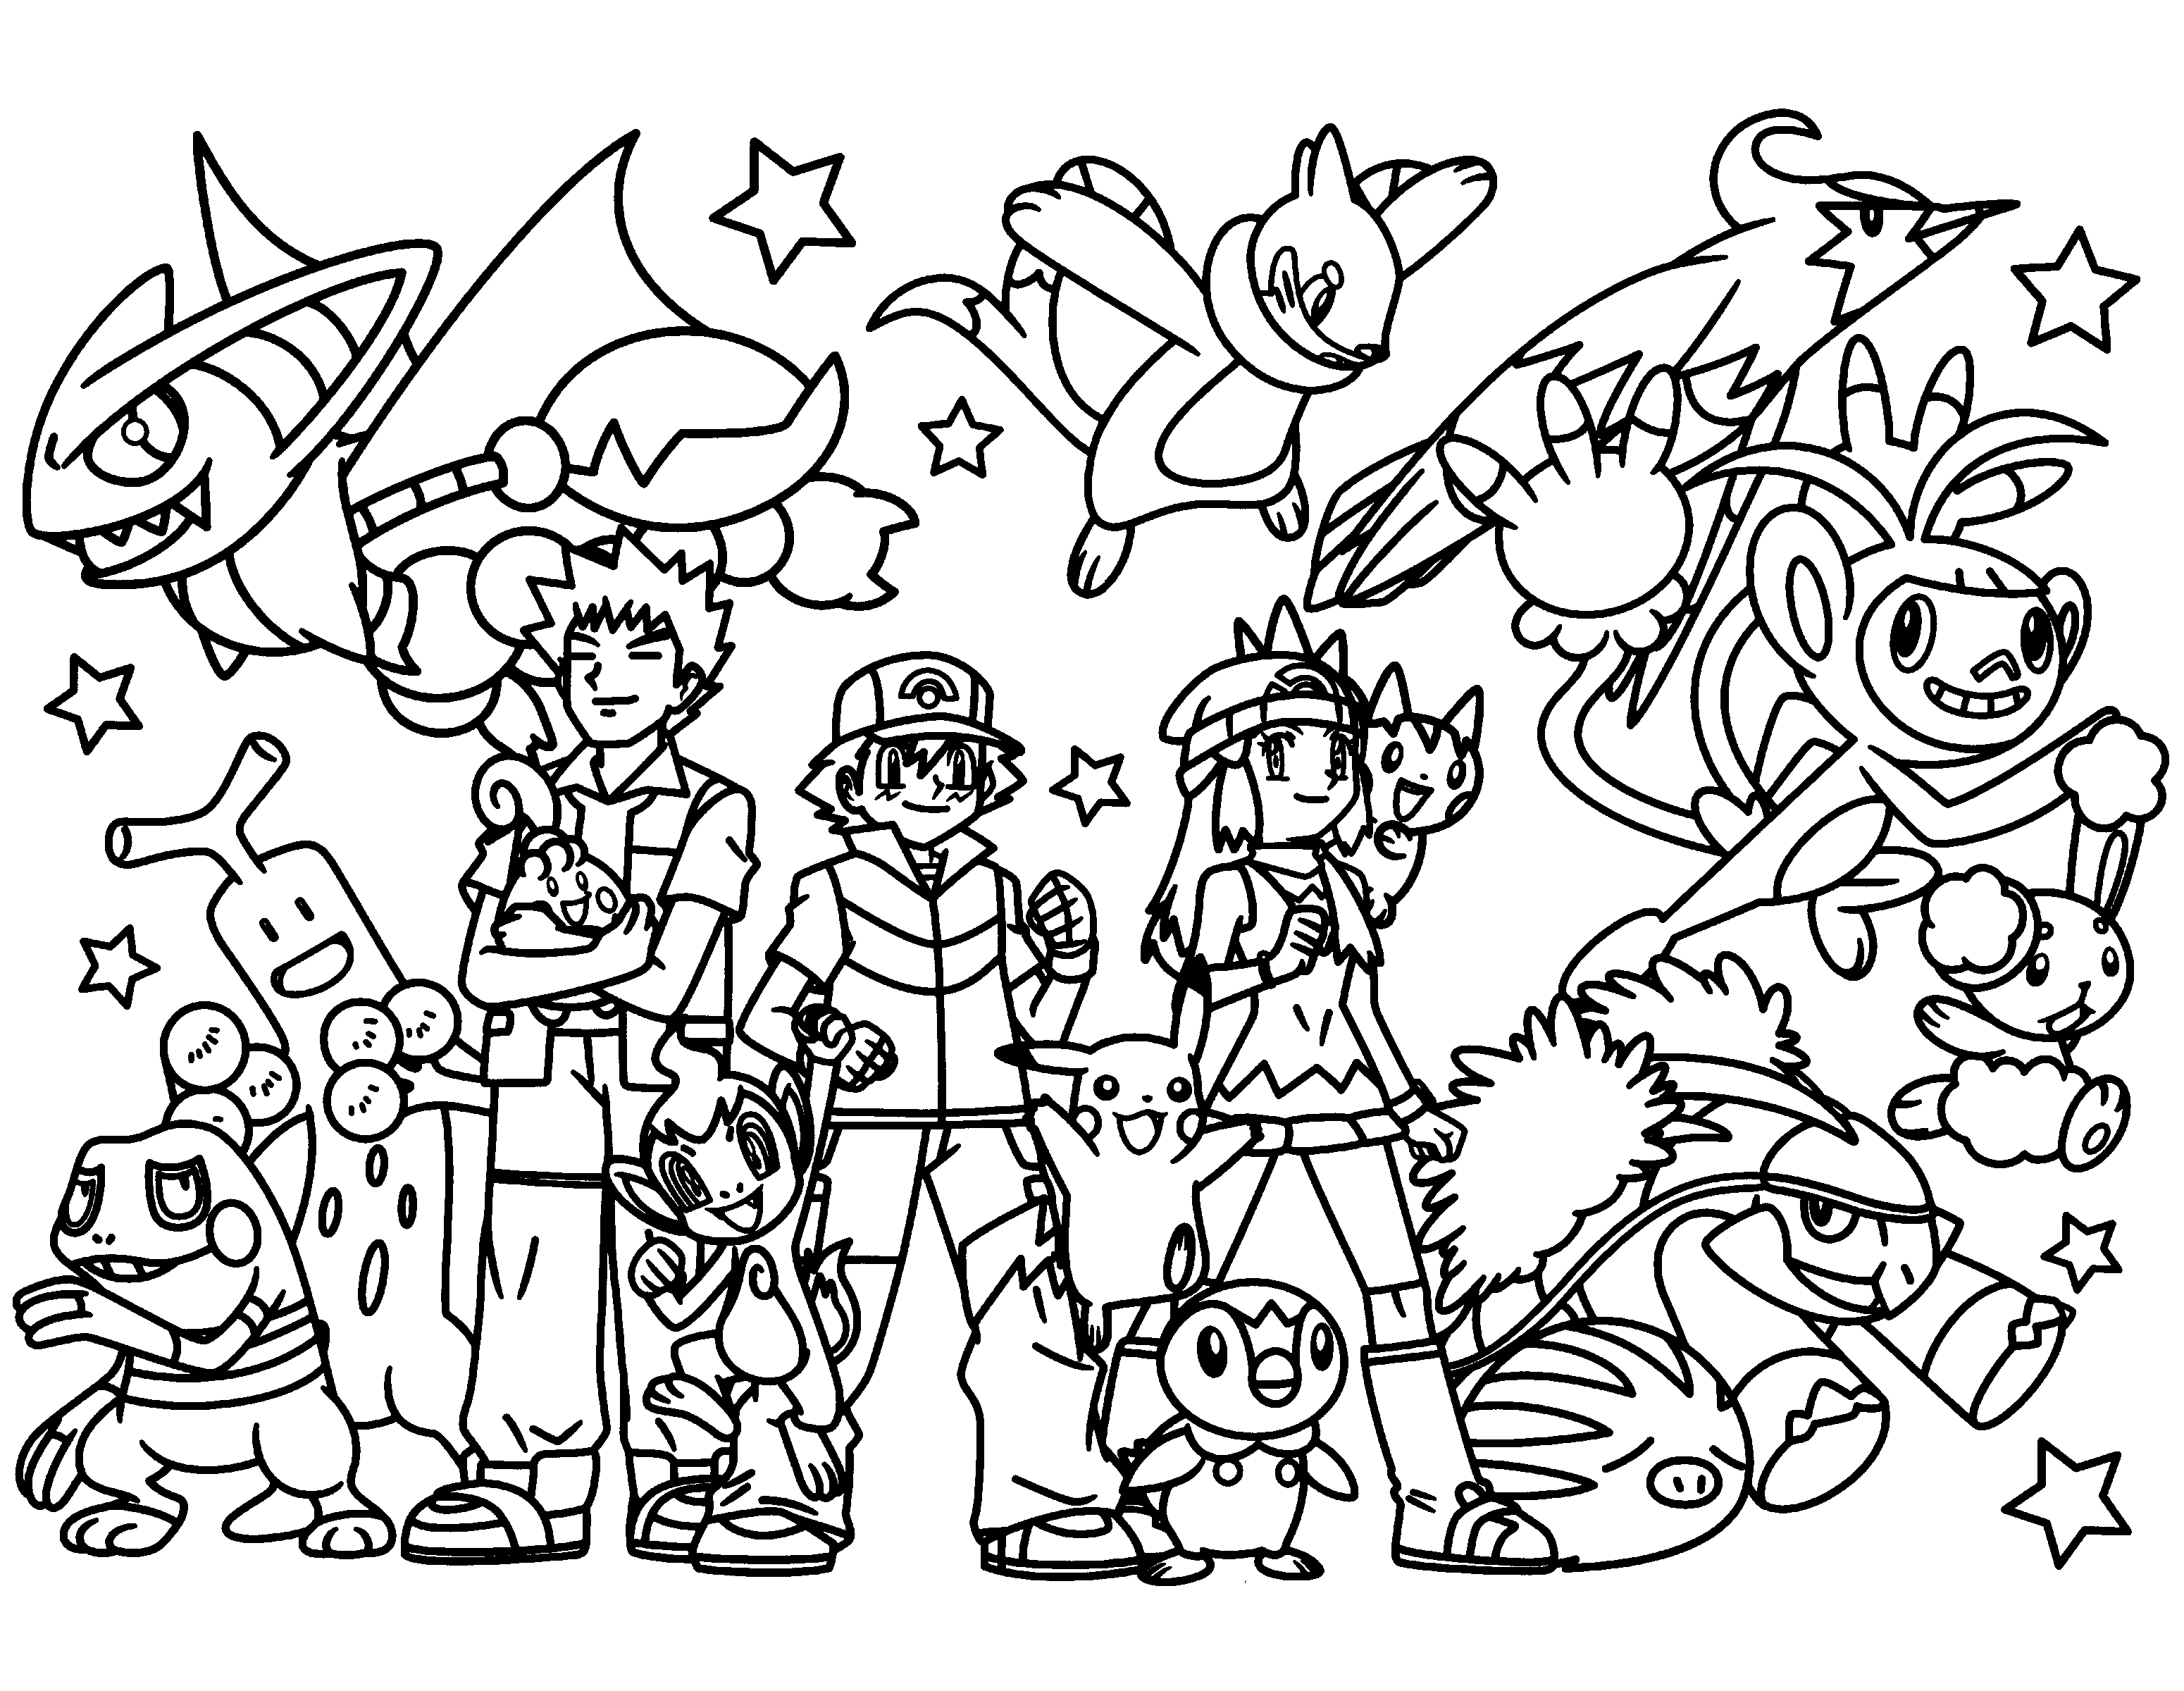 pokemon colouring pictures to print pokemon coloring pages join your favorite pokemon on an to colouring print pokemon pictures